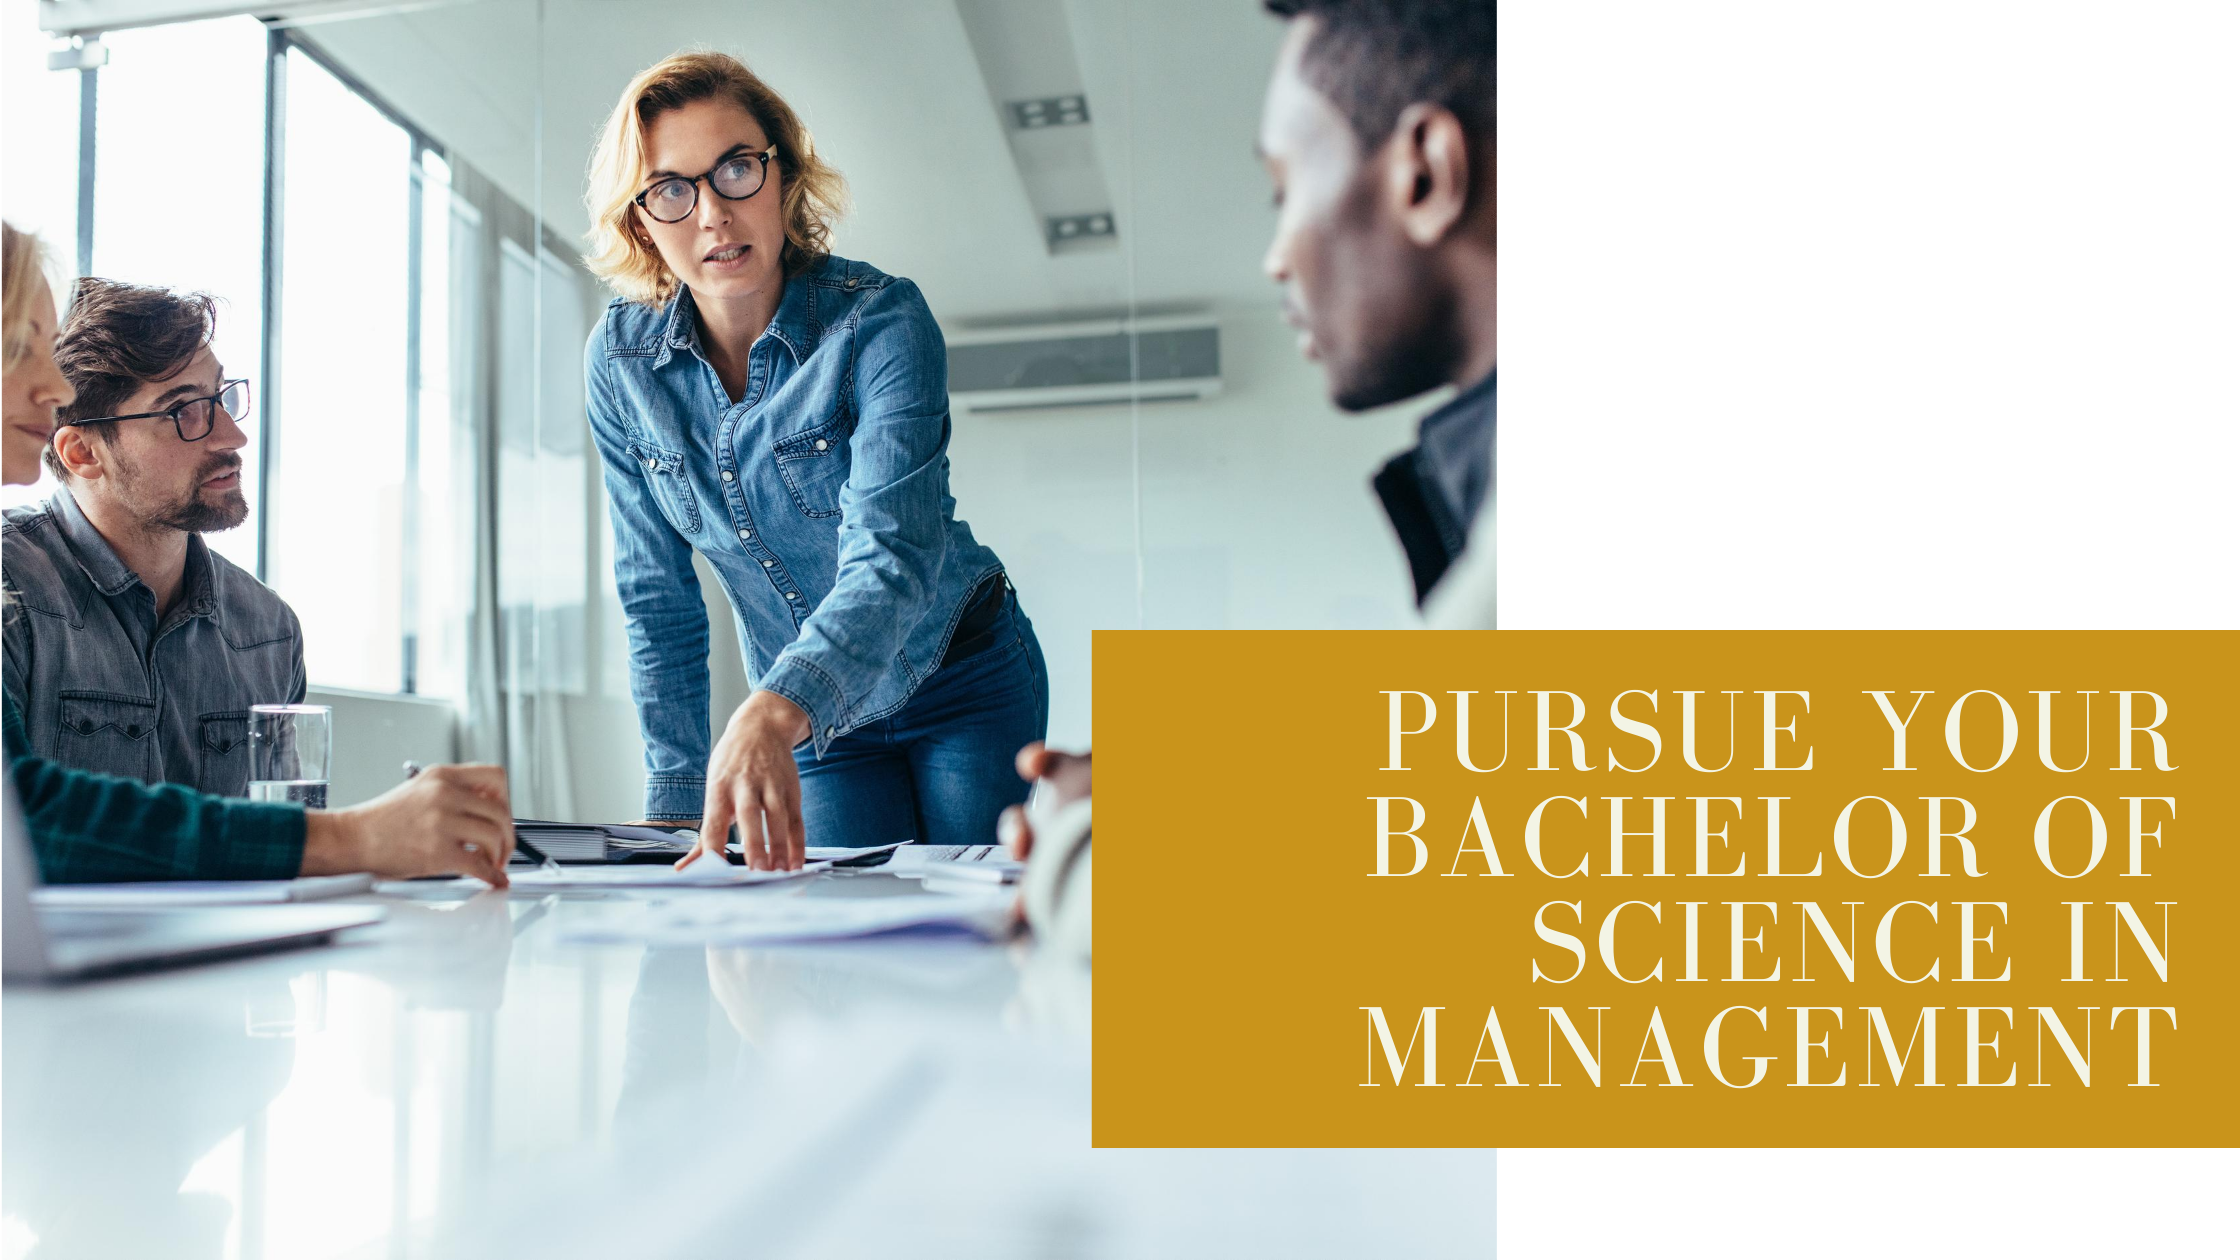 Compelling Reasons to Pursue Your Bachelor of Science in Management